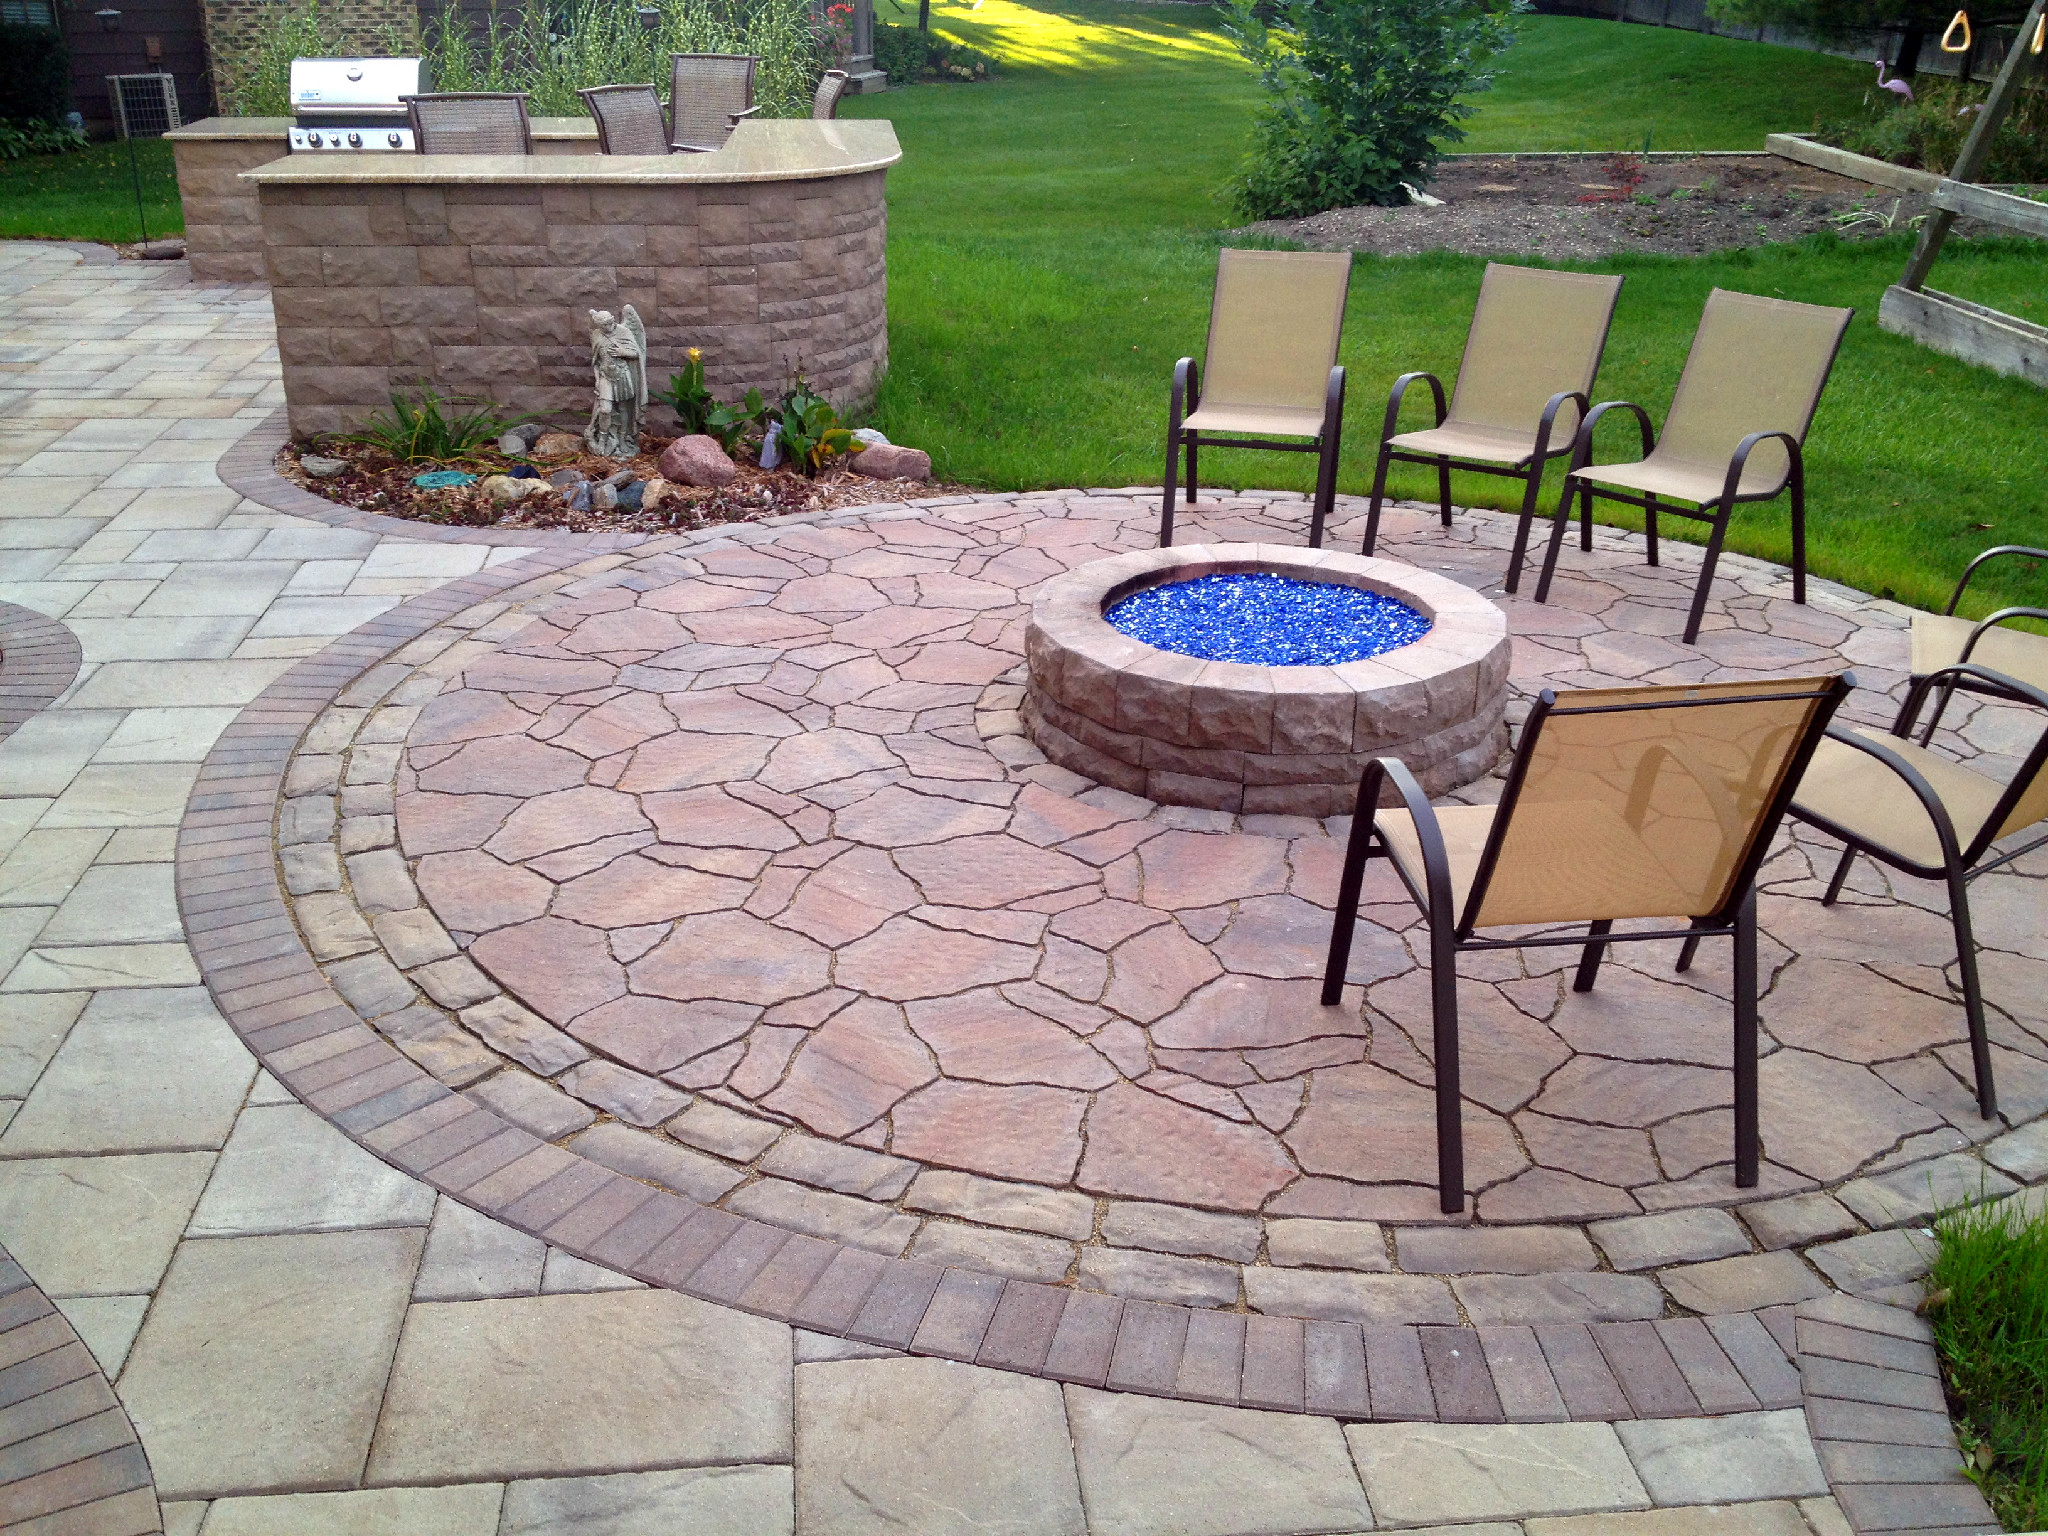 Should I Use Concrete or Pavers for My Chicagoland Patio ... on Paver Patio Designs With Fire Pit id=58022